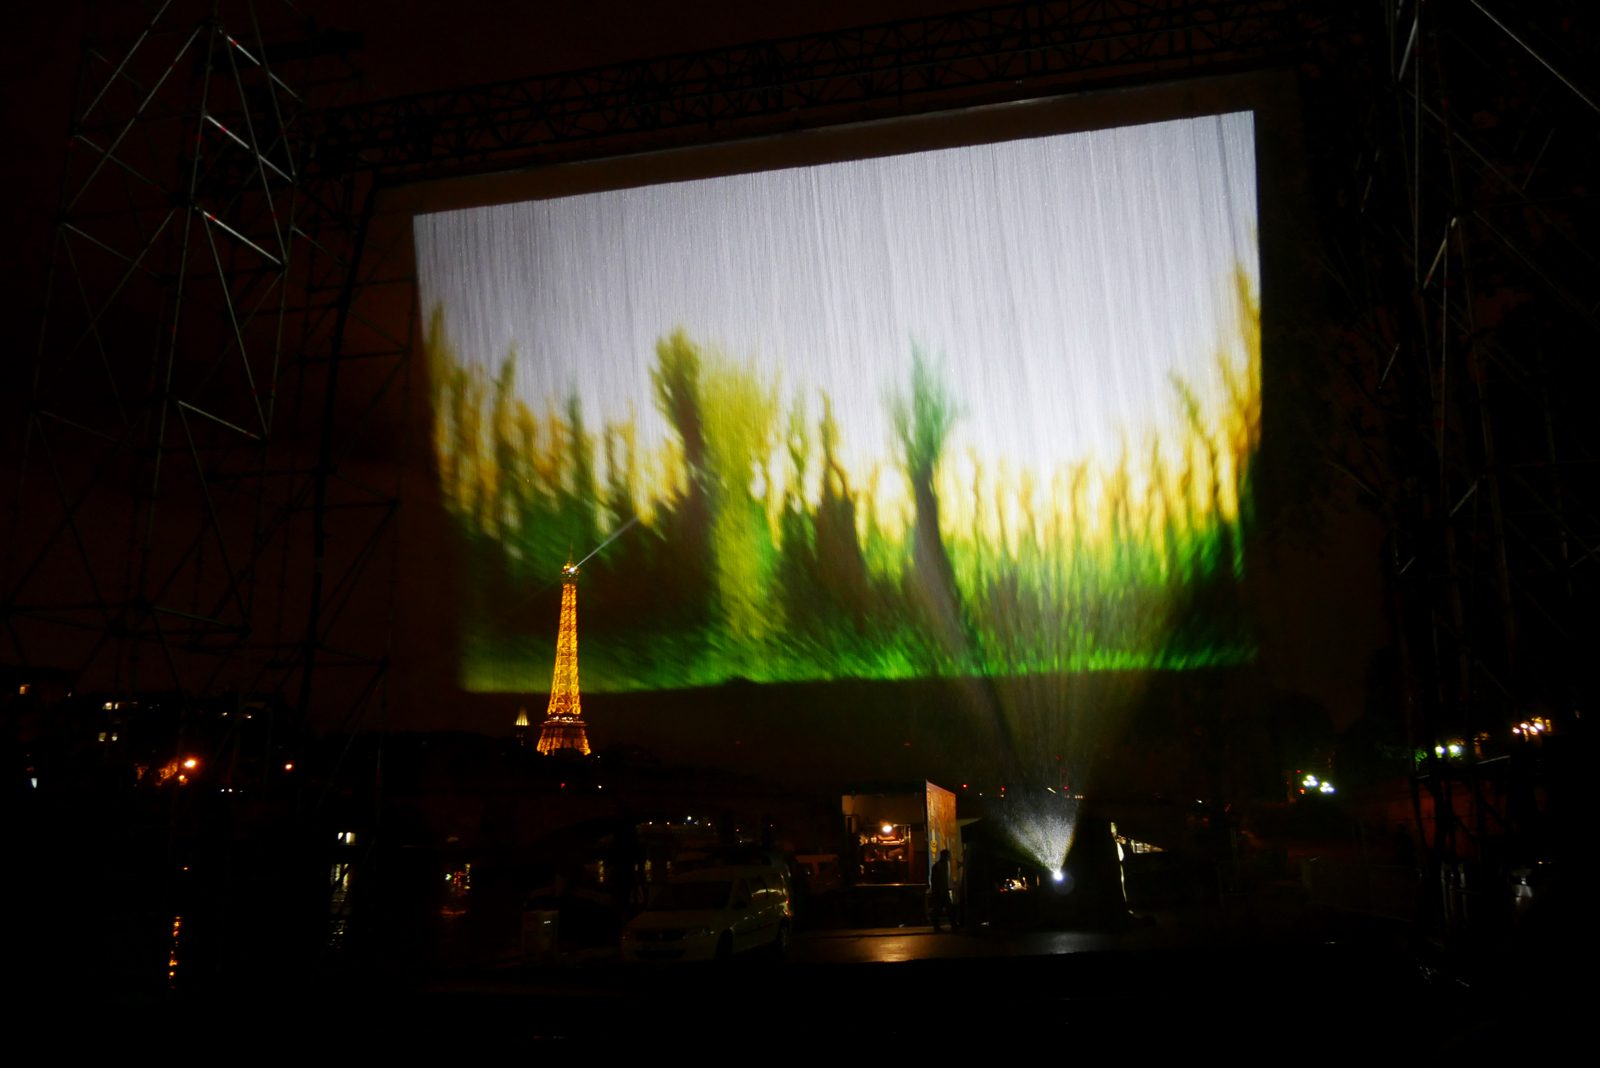 nuit-blanche-2016-paris-atelier-du-bout-de-la-cale-projection-perfomance-argos-pont-champs-elysees-photo-usofparis-blog